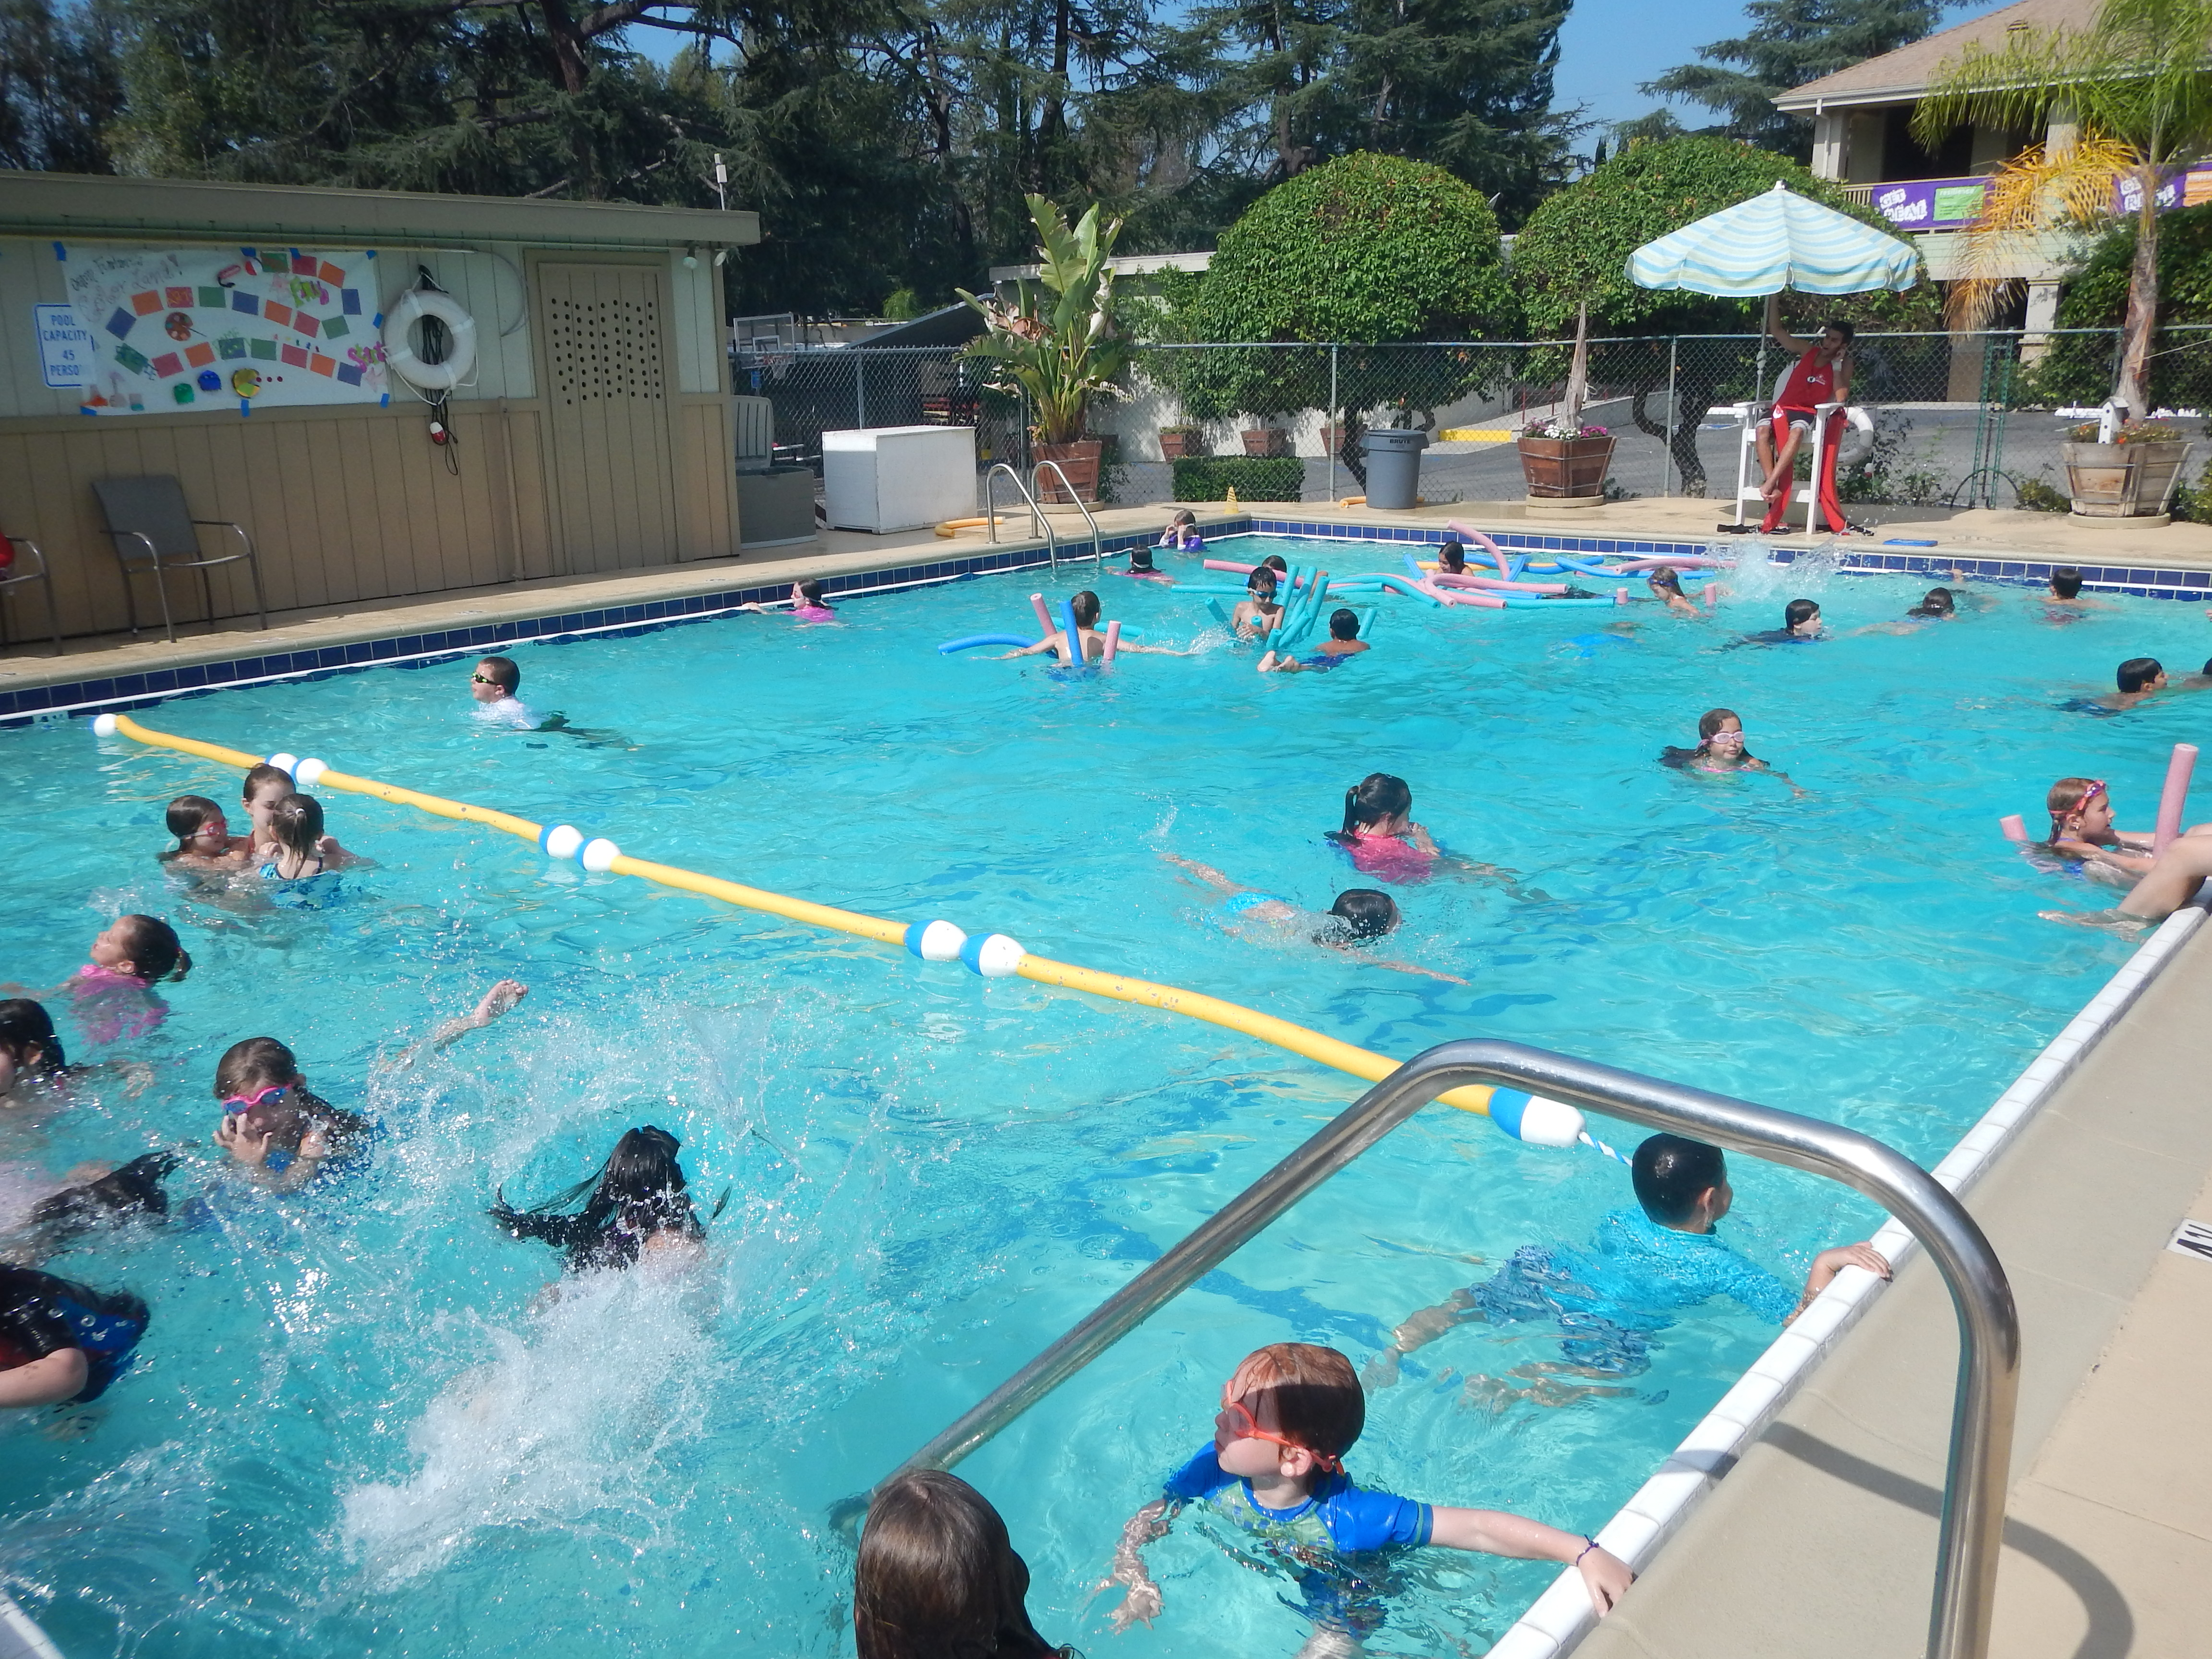 camp funtime children 39 s summer camp day camp in encino near los angeles california